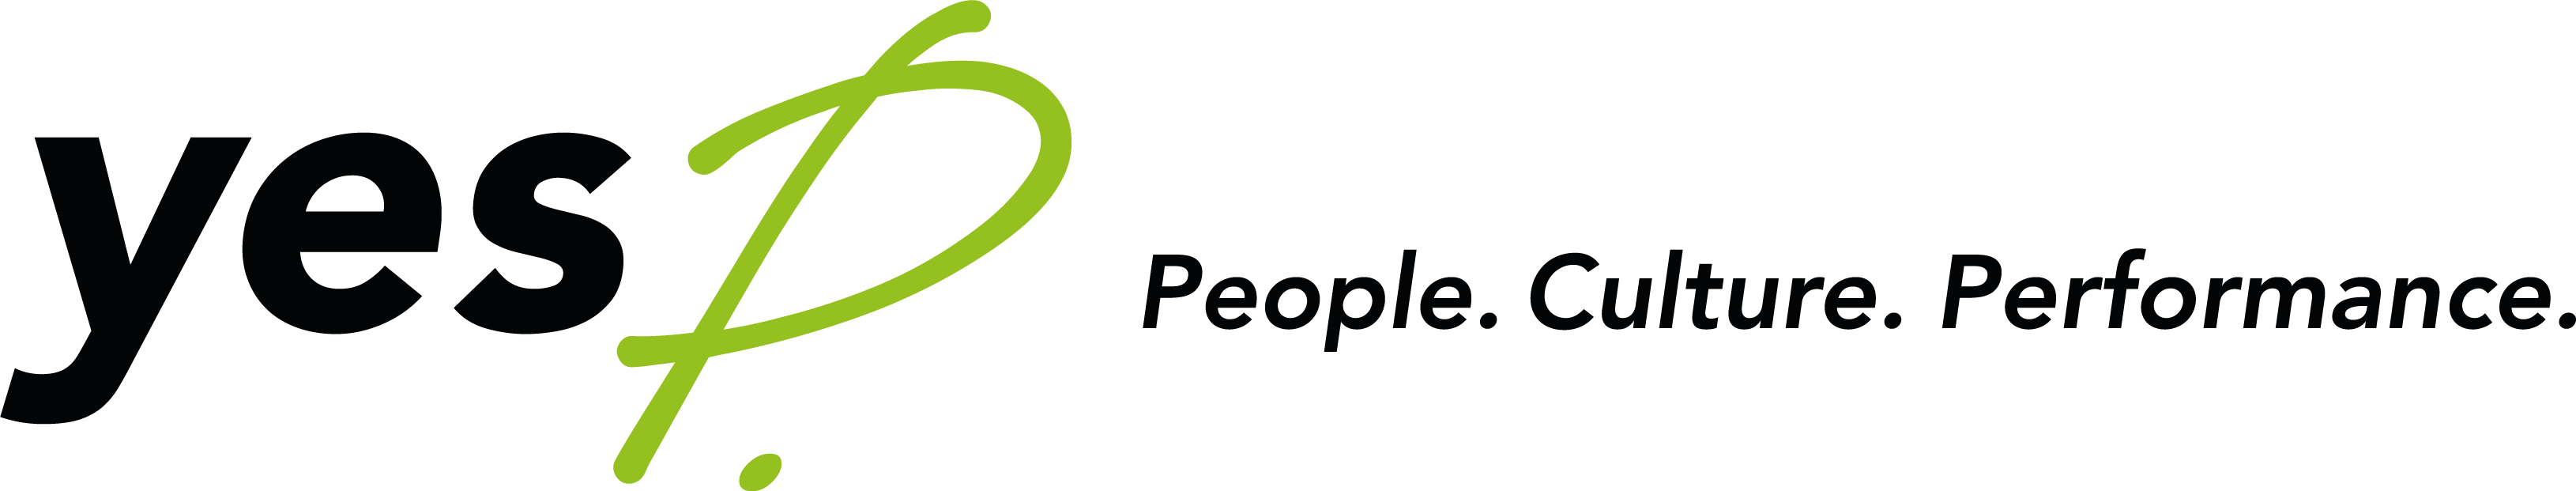 Yesp Logo with People, Culture & Performance